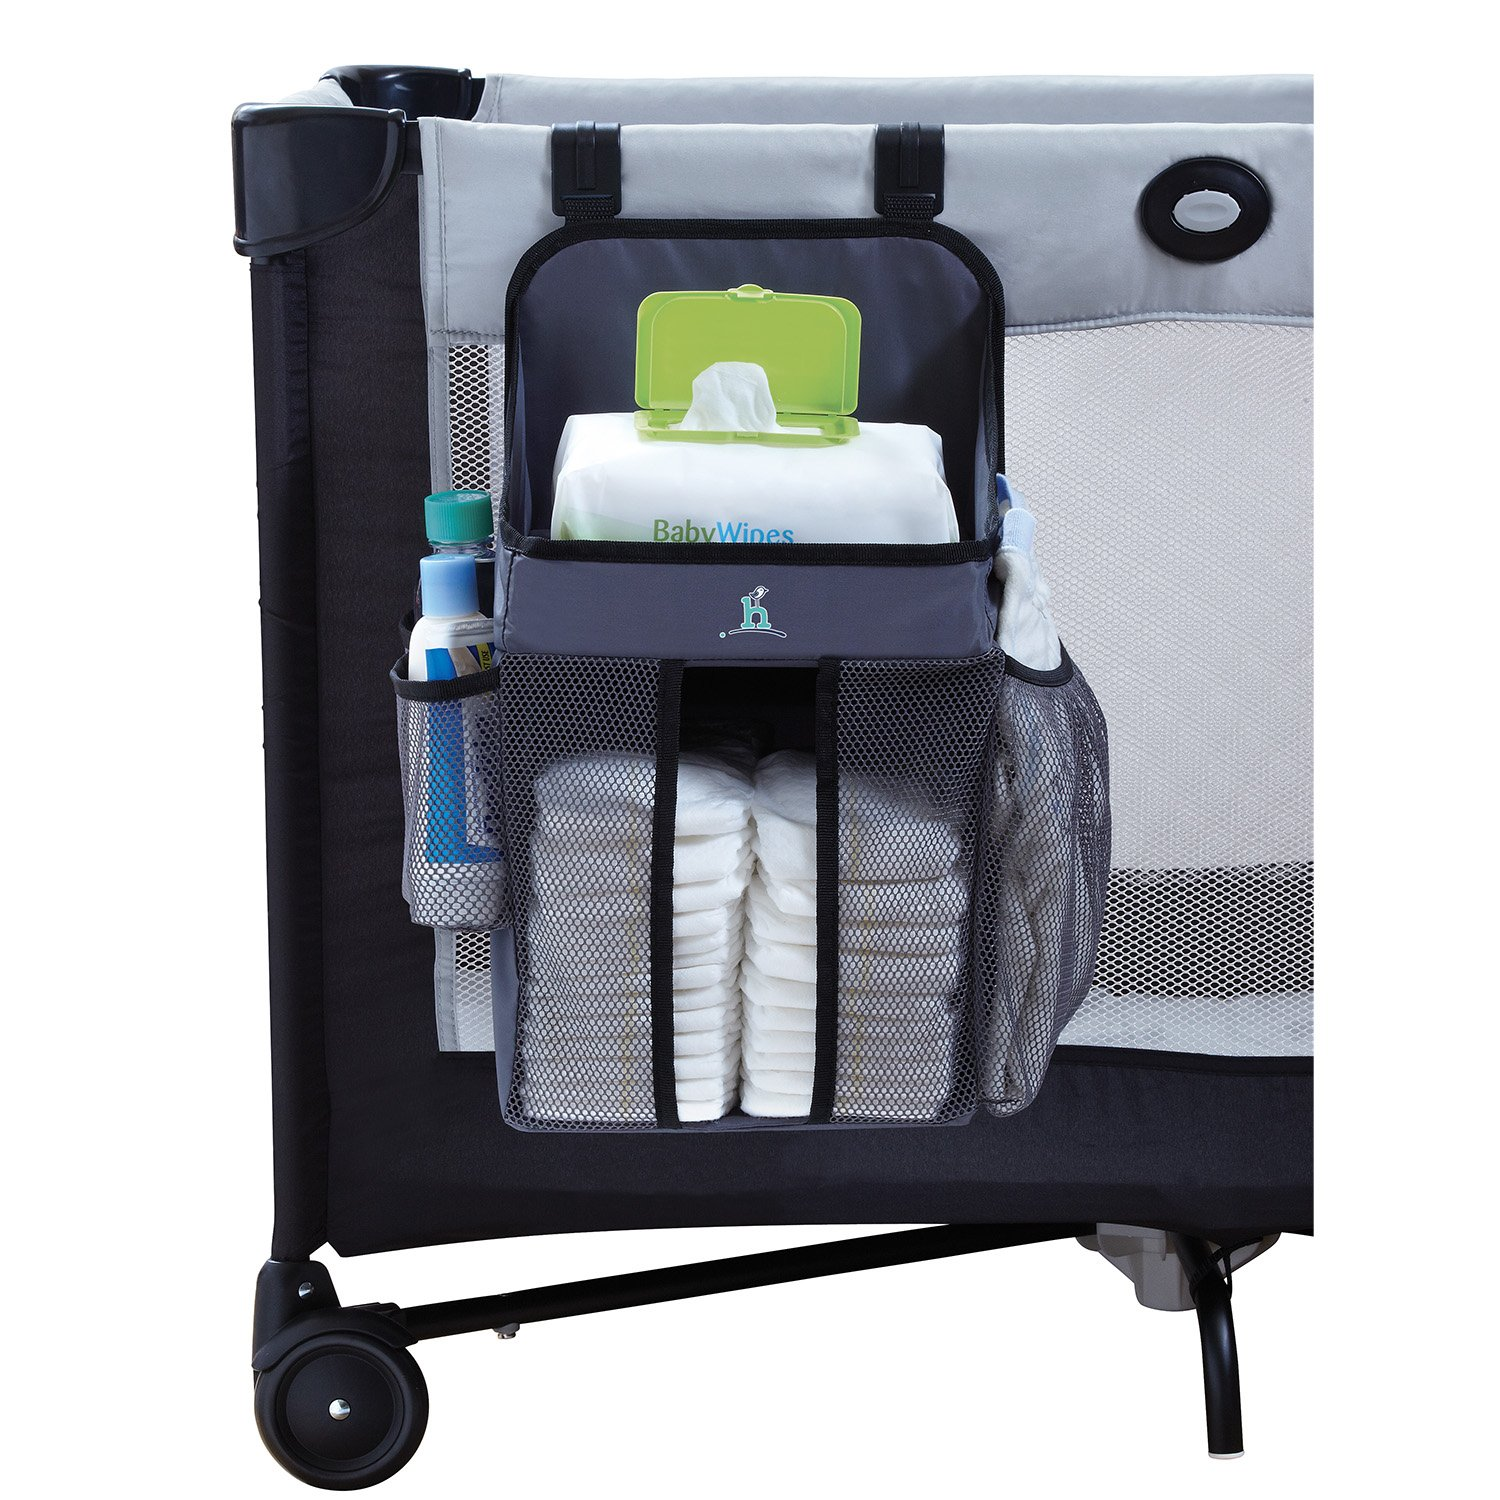 hiccapop Playard Nursery Organizer and Diapers Organizer | Baby Diaper Caddy | Universal Fit for Hanging on All Playards | Store Lotion, Wet Wipes and More BPOP-GY